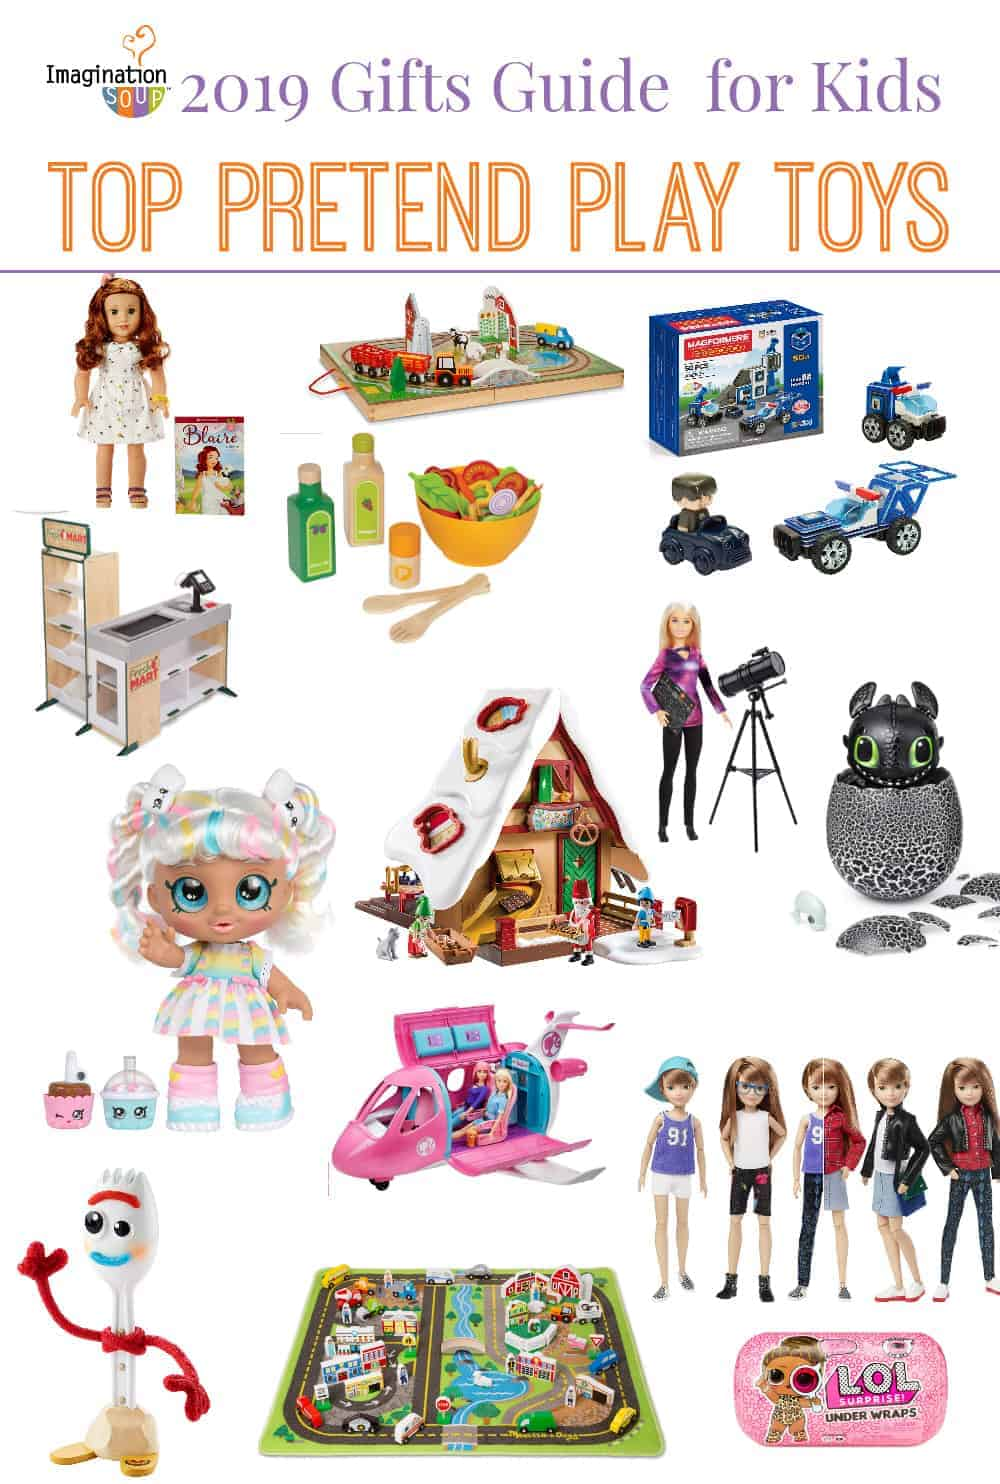 top pretend play toys and gifts for kids 2019